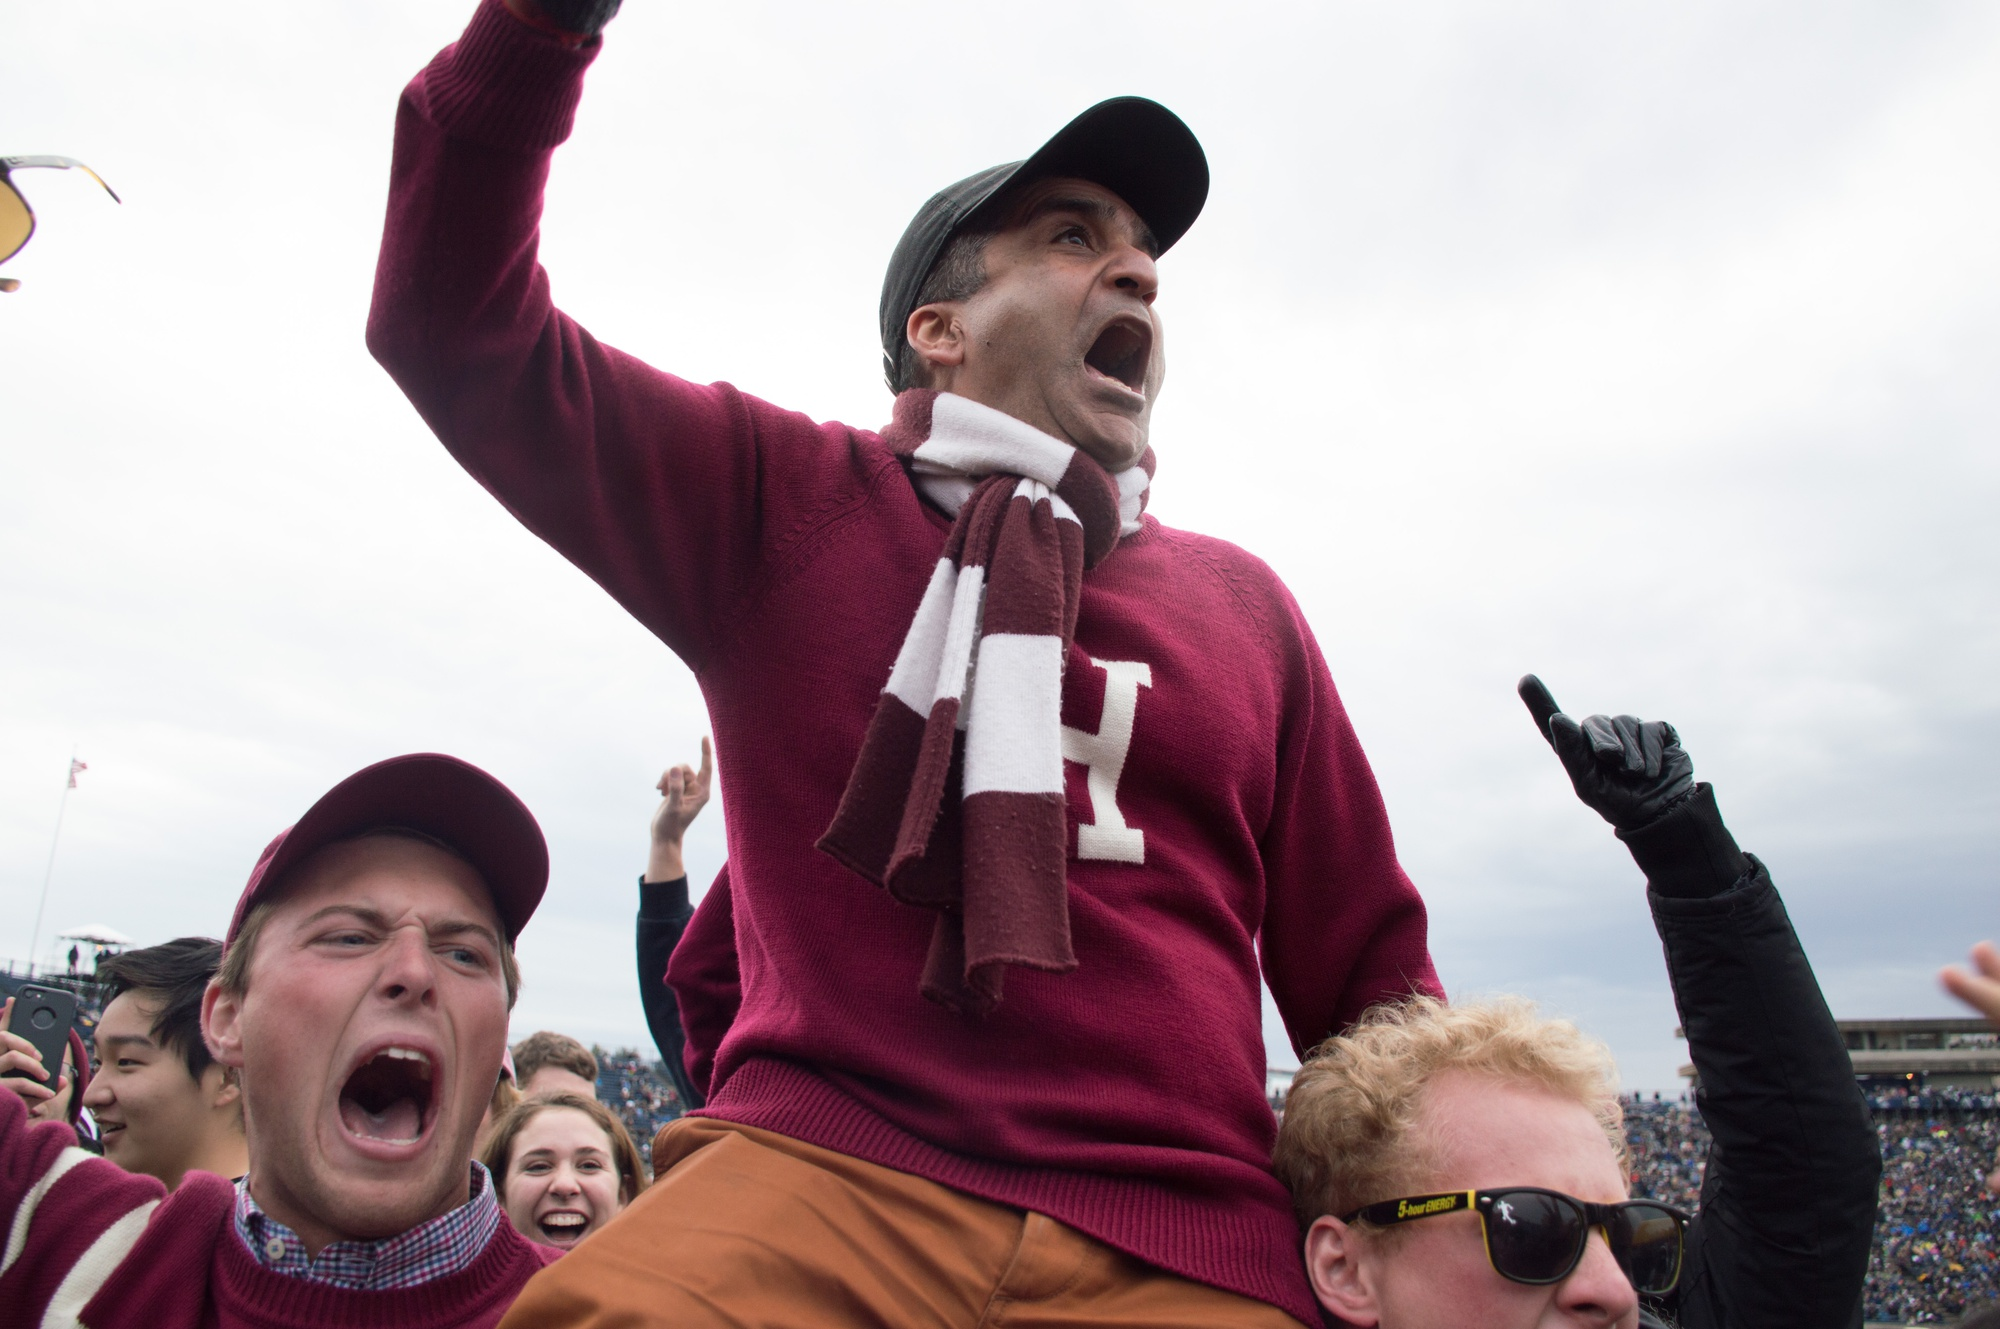 Anthony J. W. Kenny '20 and Sebastian A. Schwartz '20 carry Dean of the College Rakesh Khurana on their shoulders through the stands of the Yale Bowl.